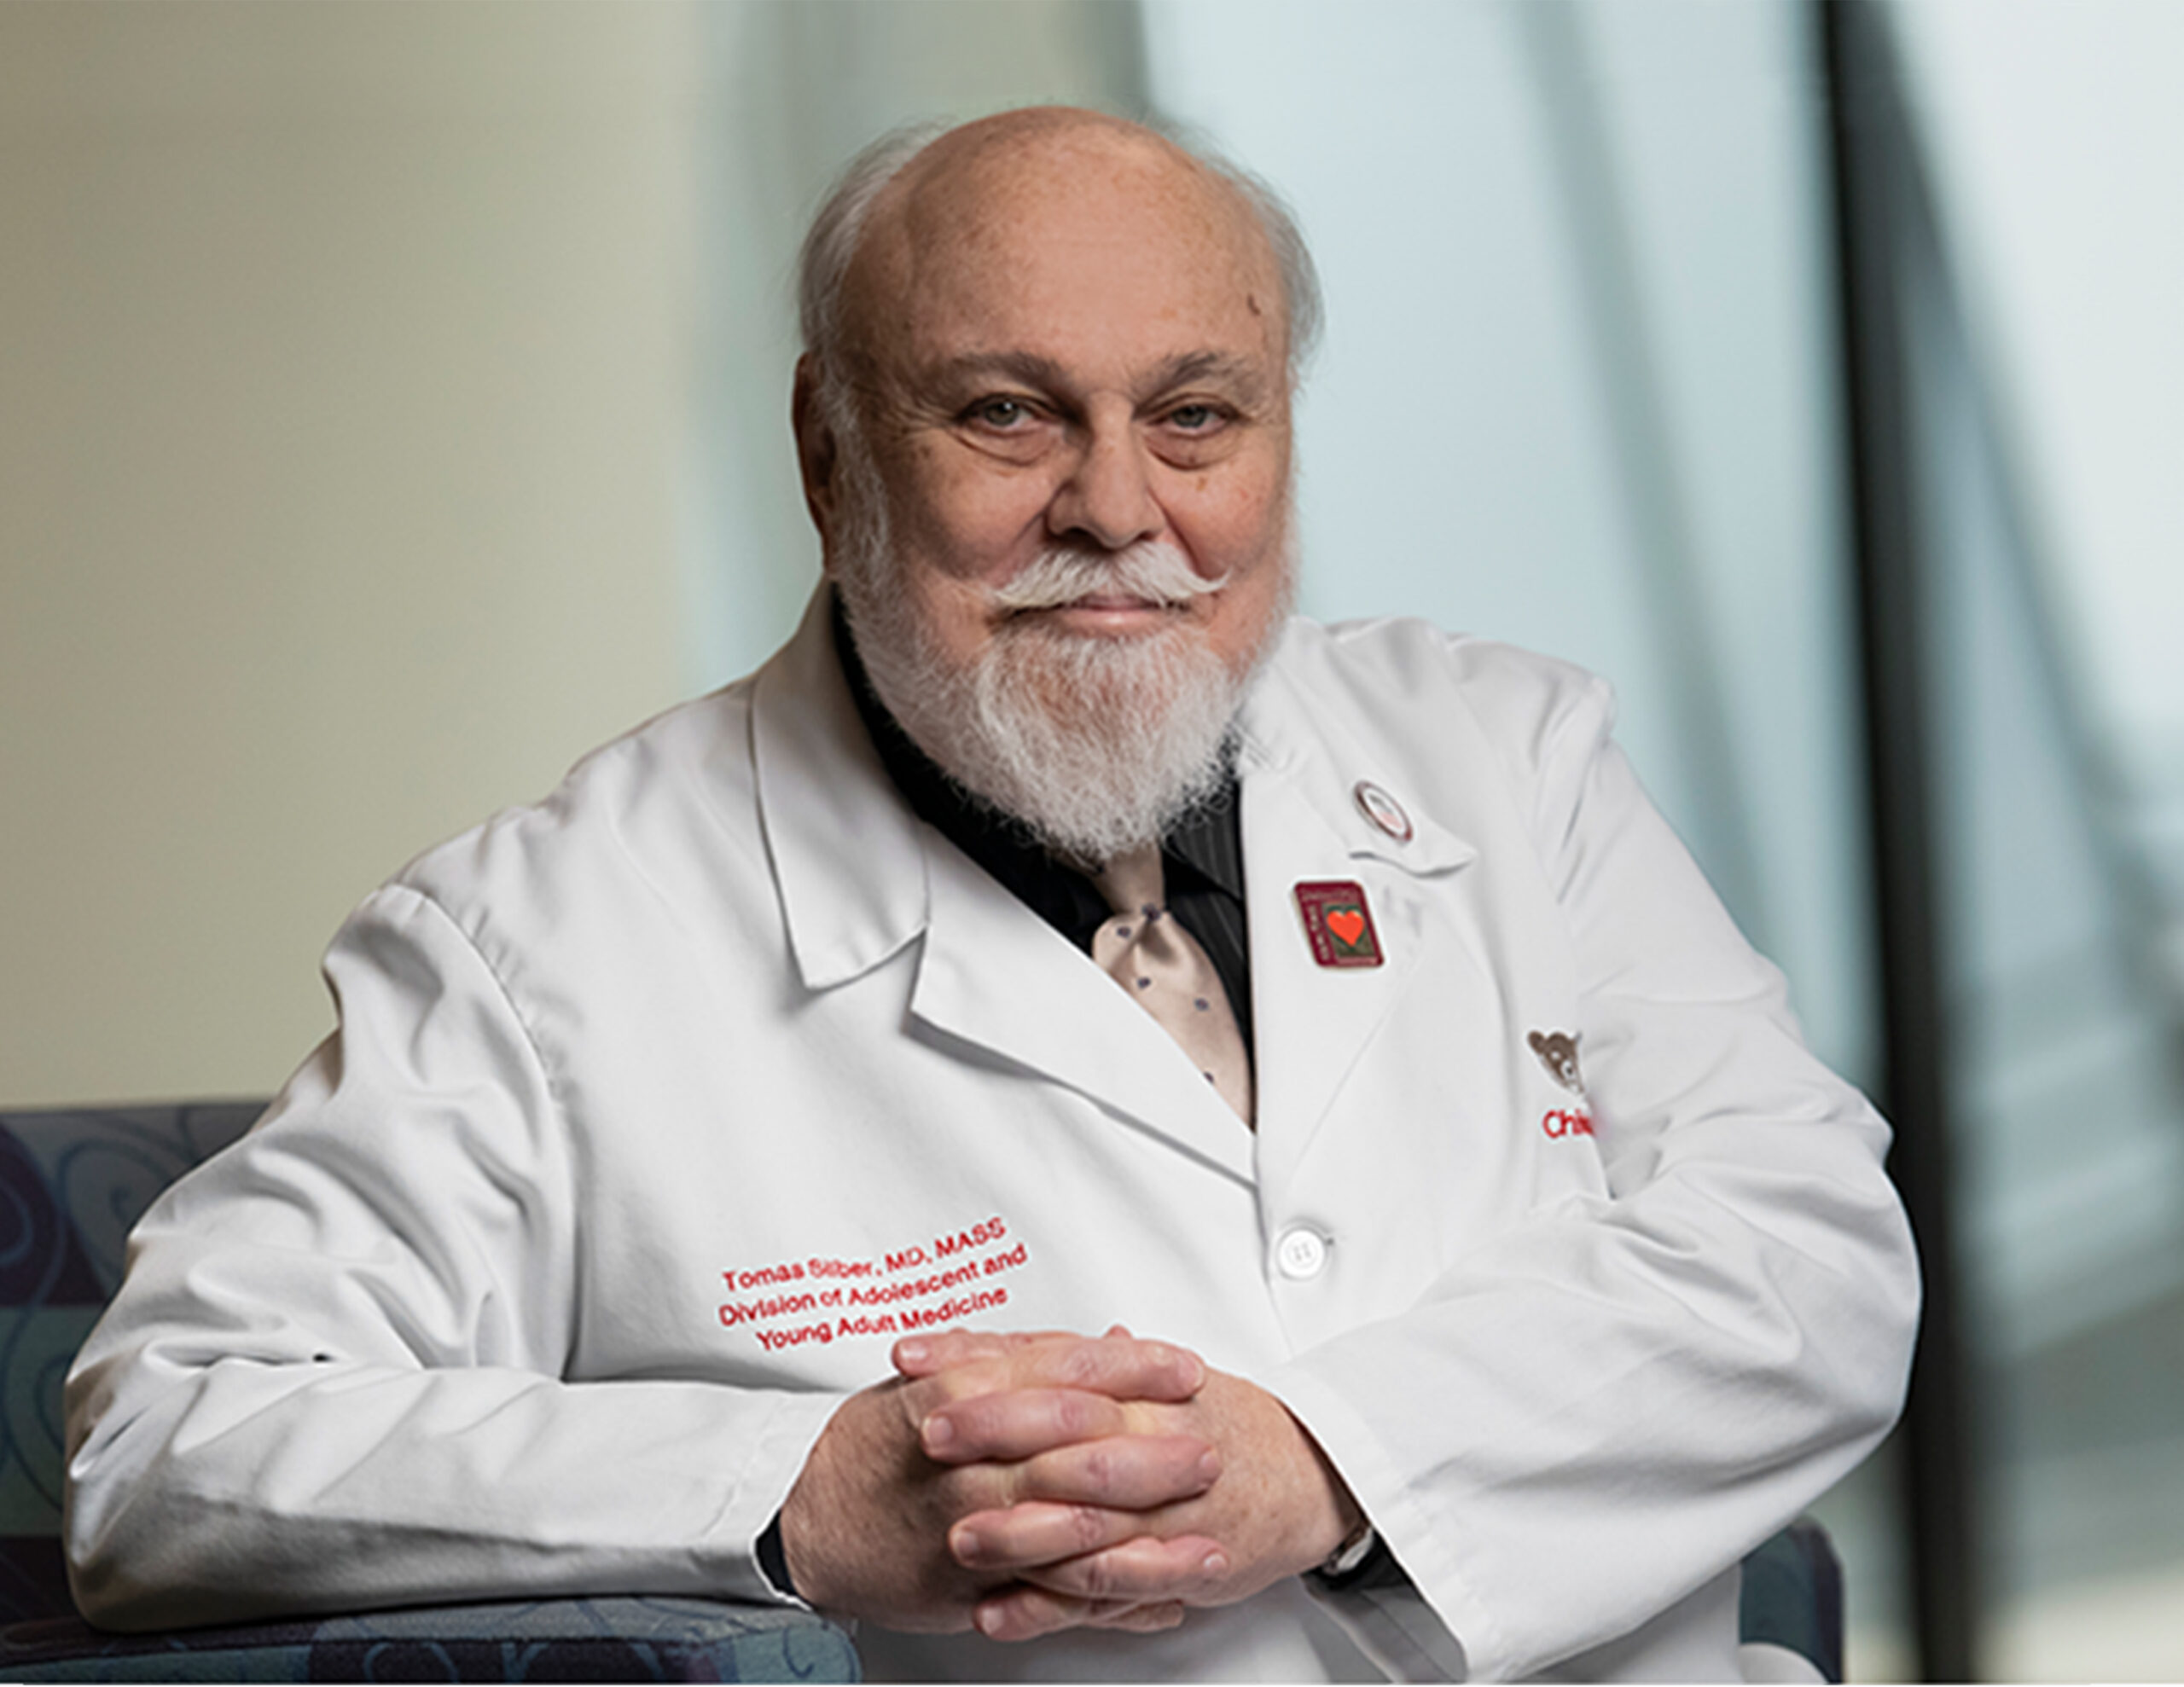 Tomas Silber, Pediatric Ethicscope Editor-in-Chief